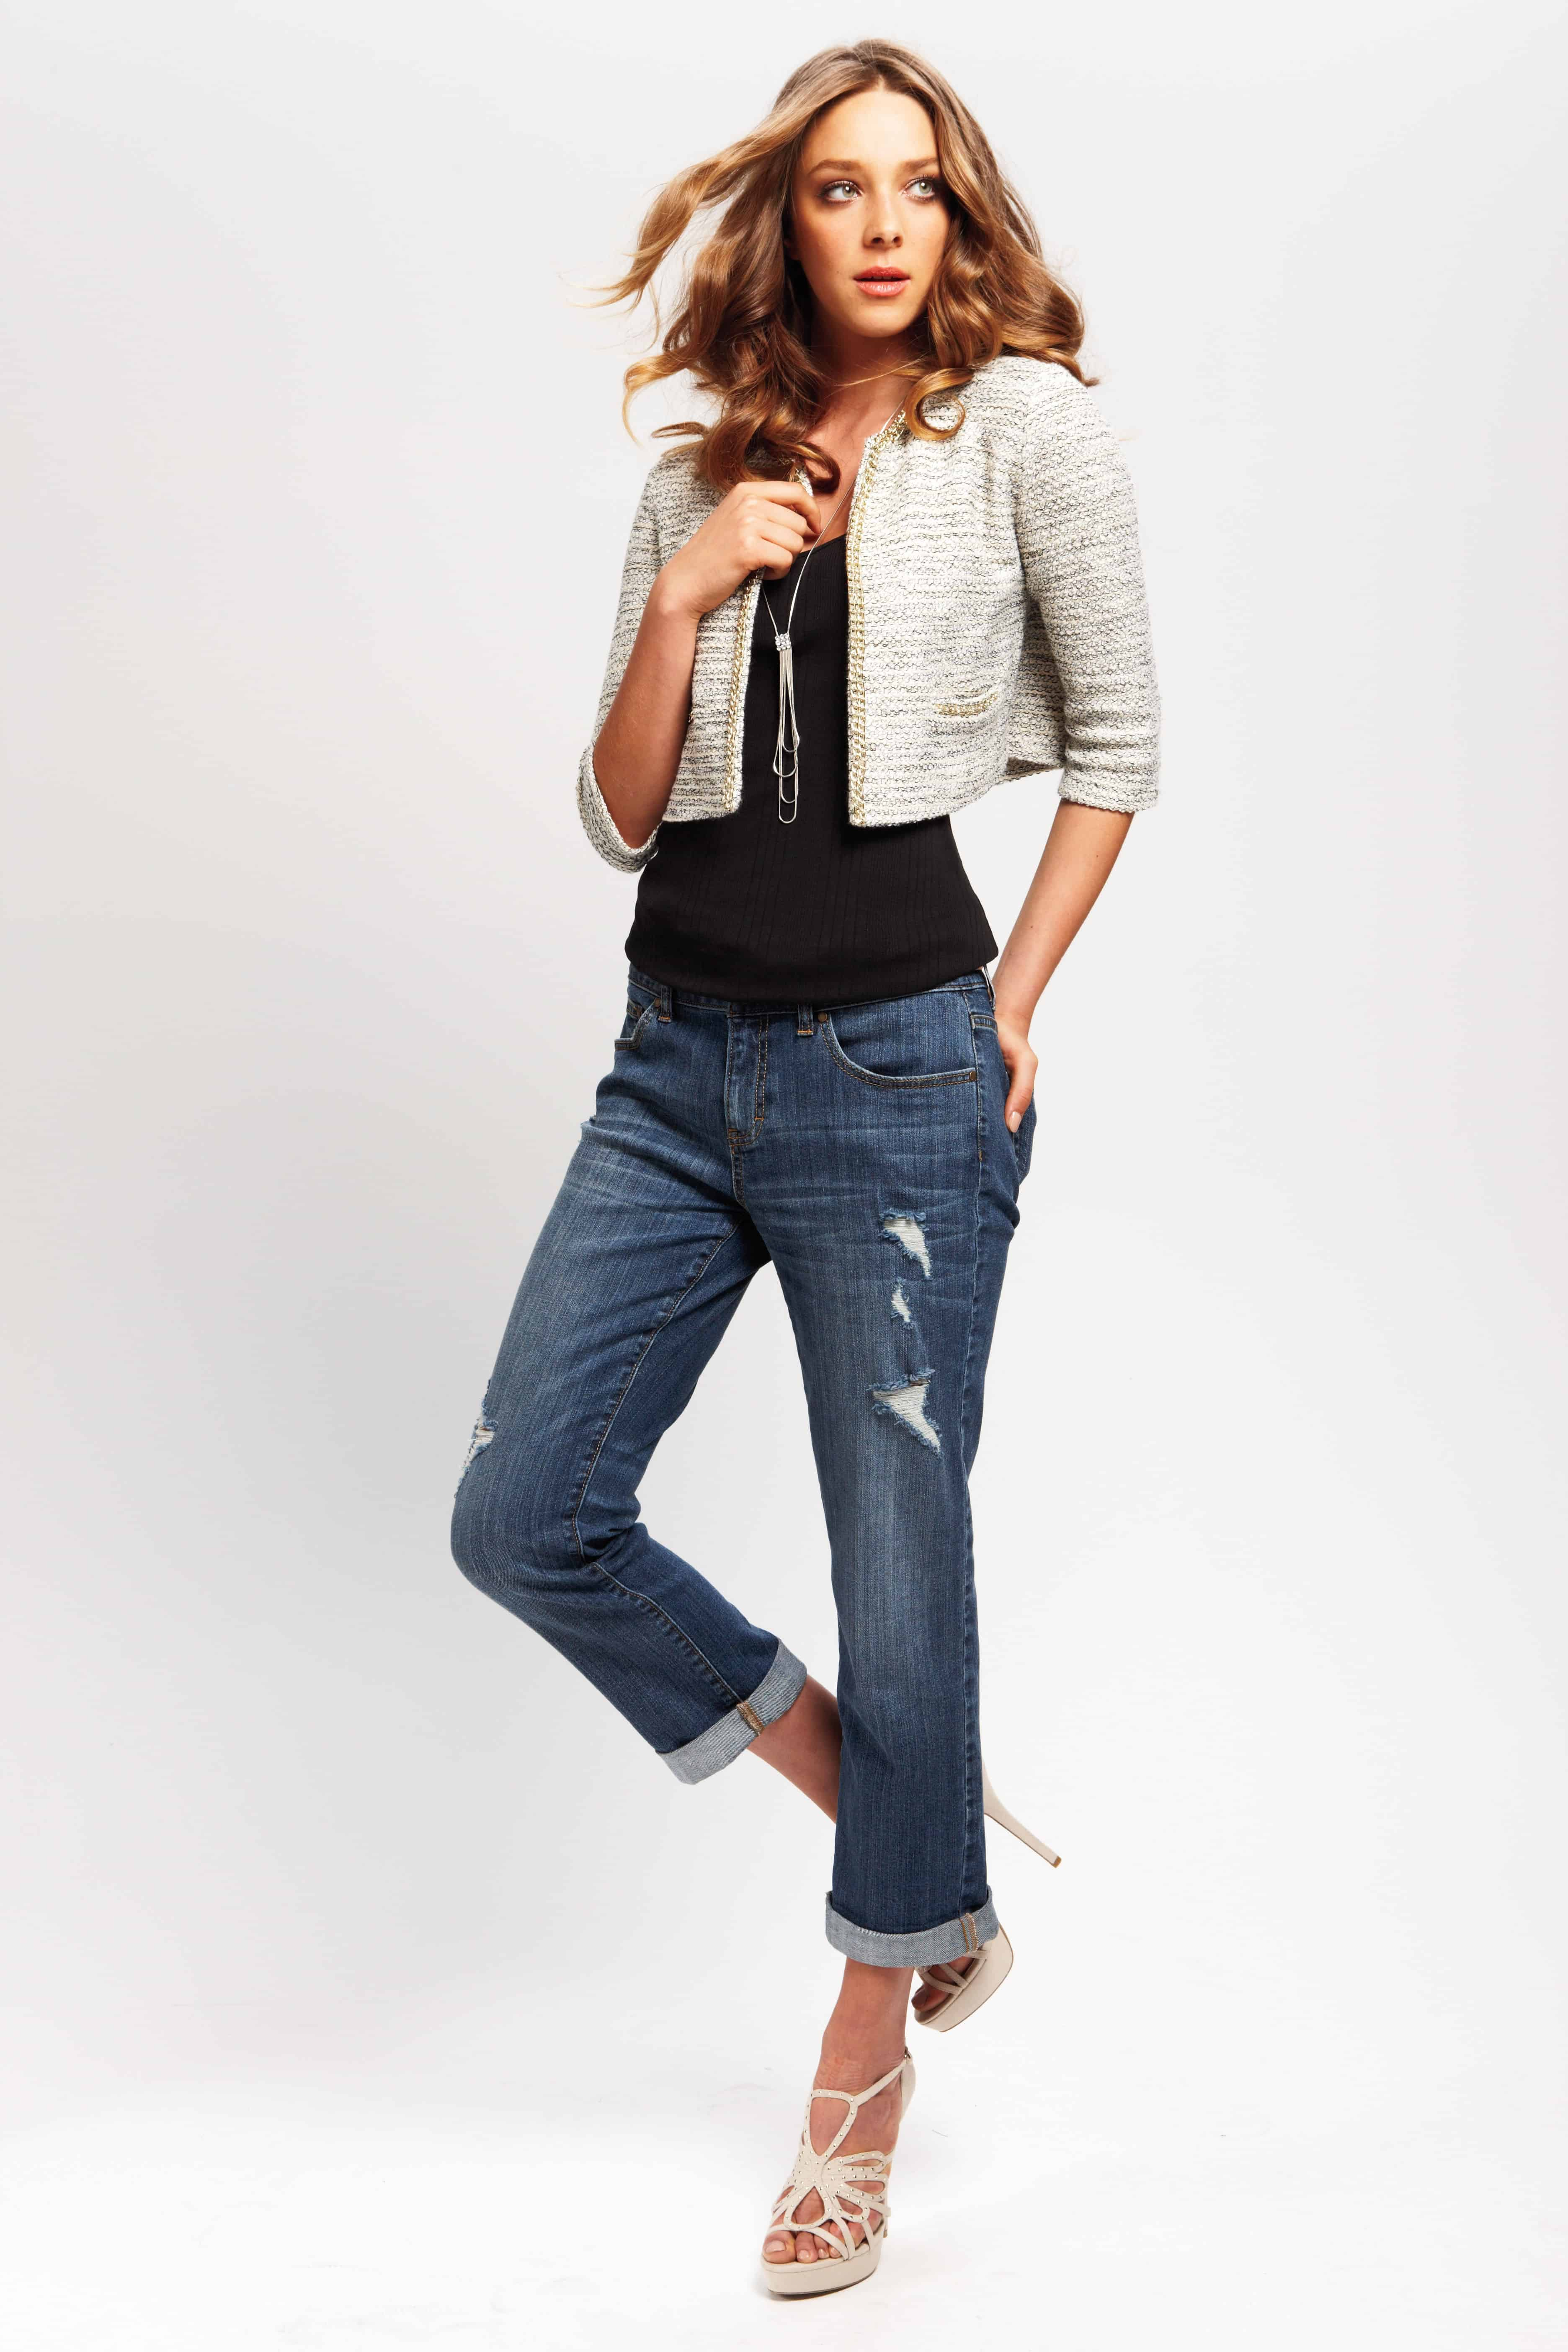 Kohls-Jennifer Lopez-cropped-jacket